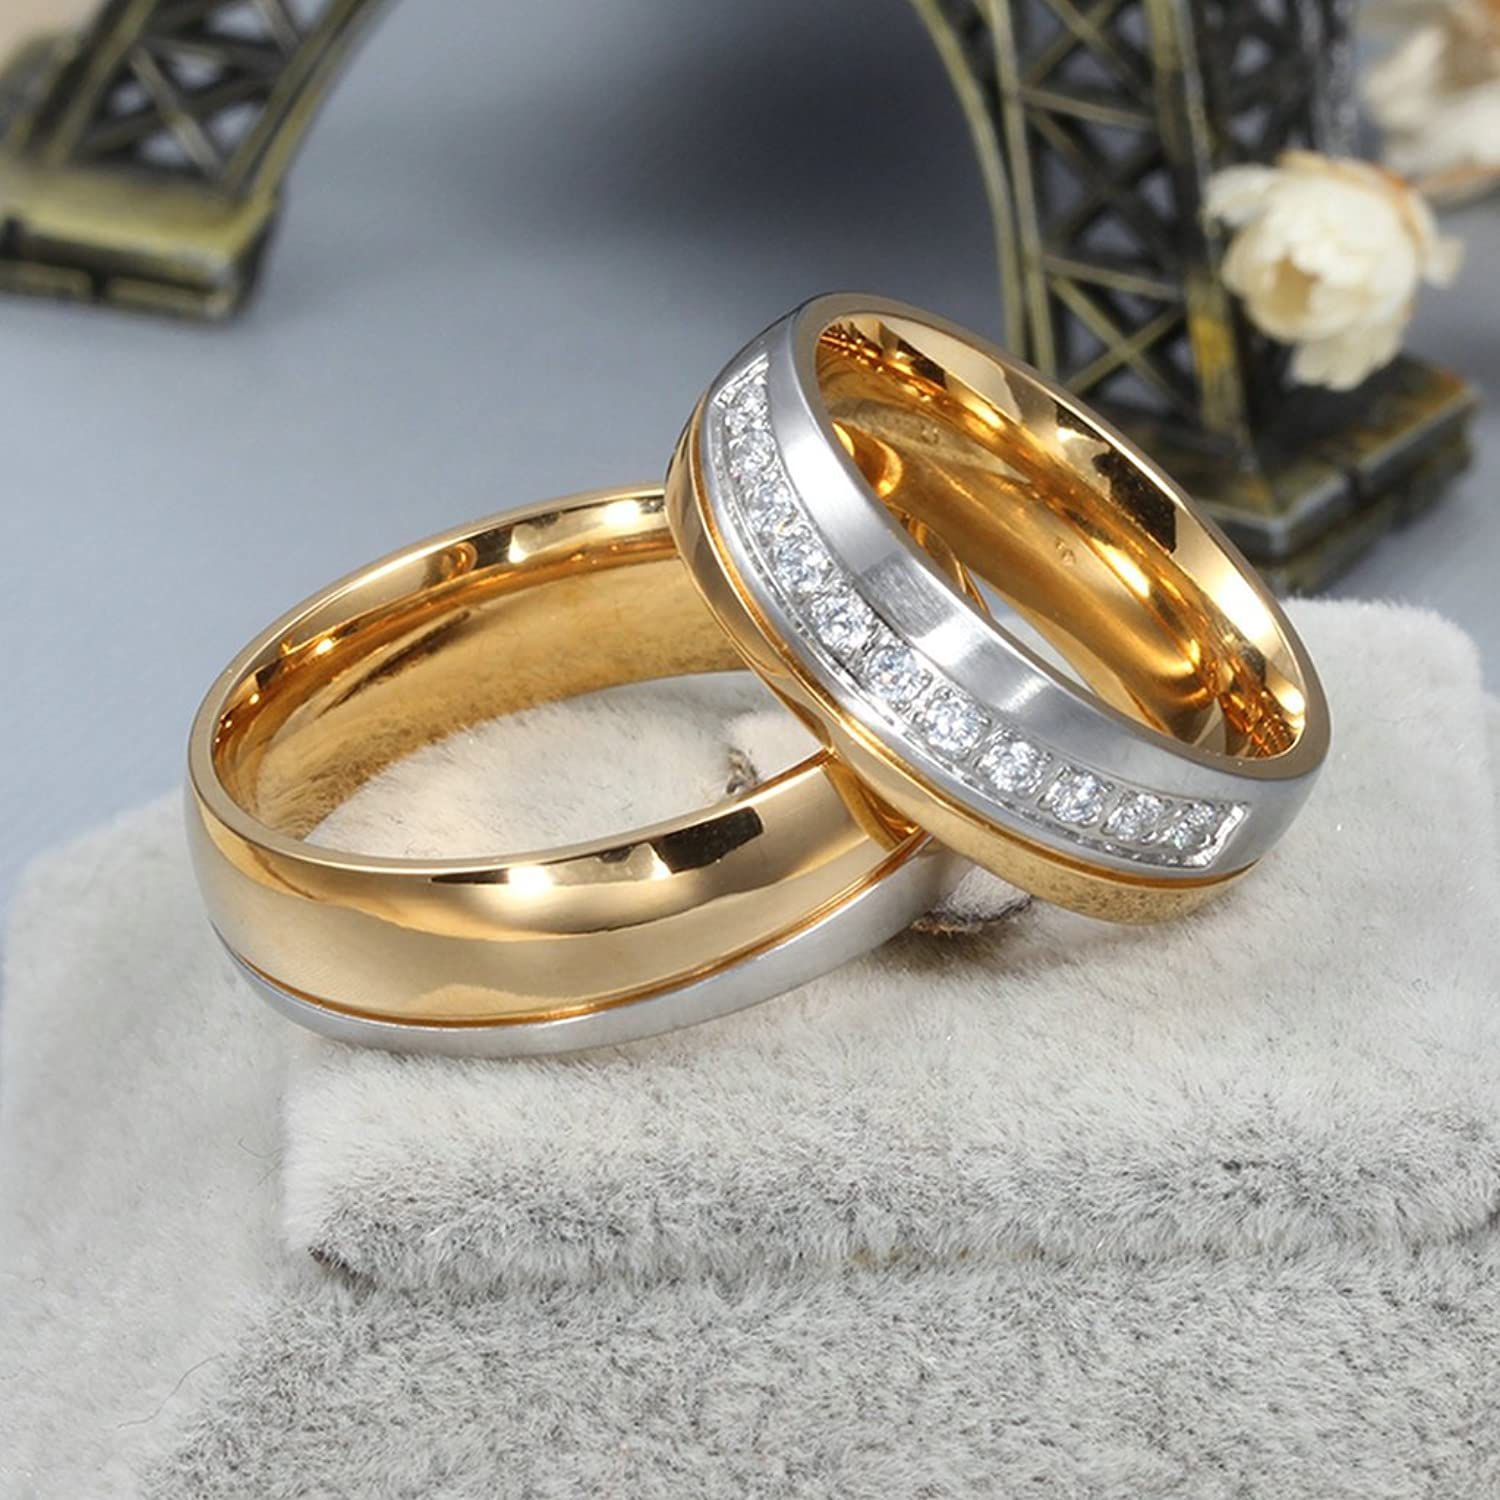 anazoz jewelry his and her for titanium 18k gold plated wedding engagement band couple ring top ring 6mmamazoncom - Rings For Wedding